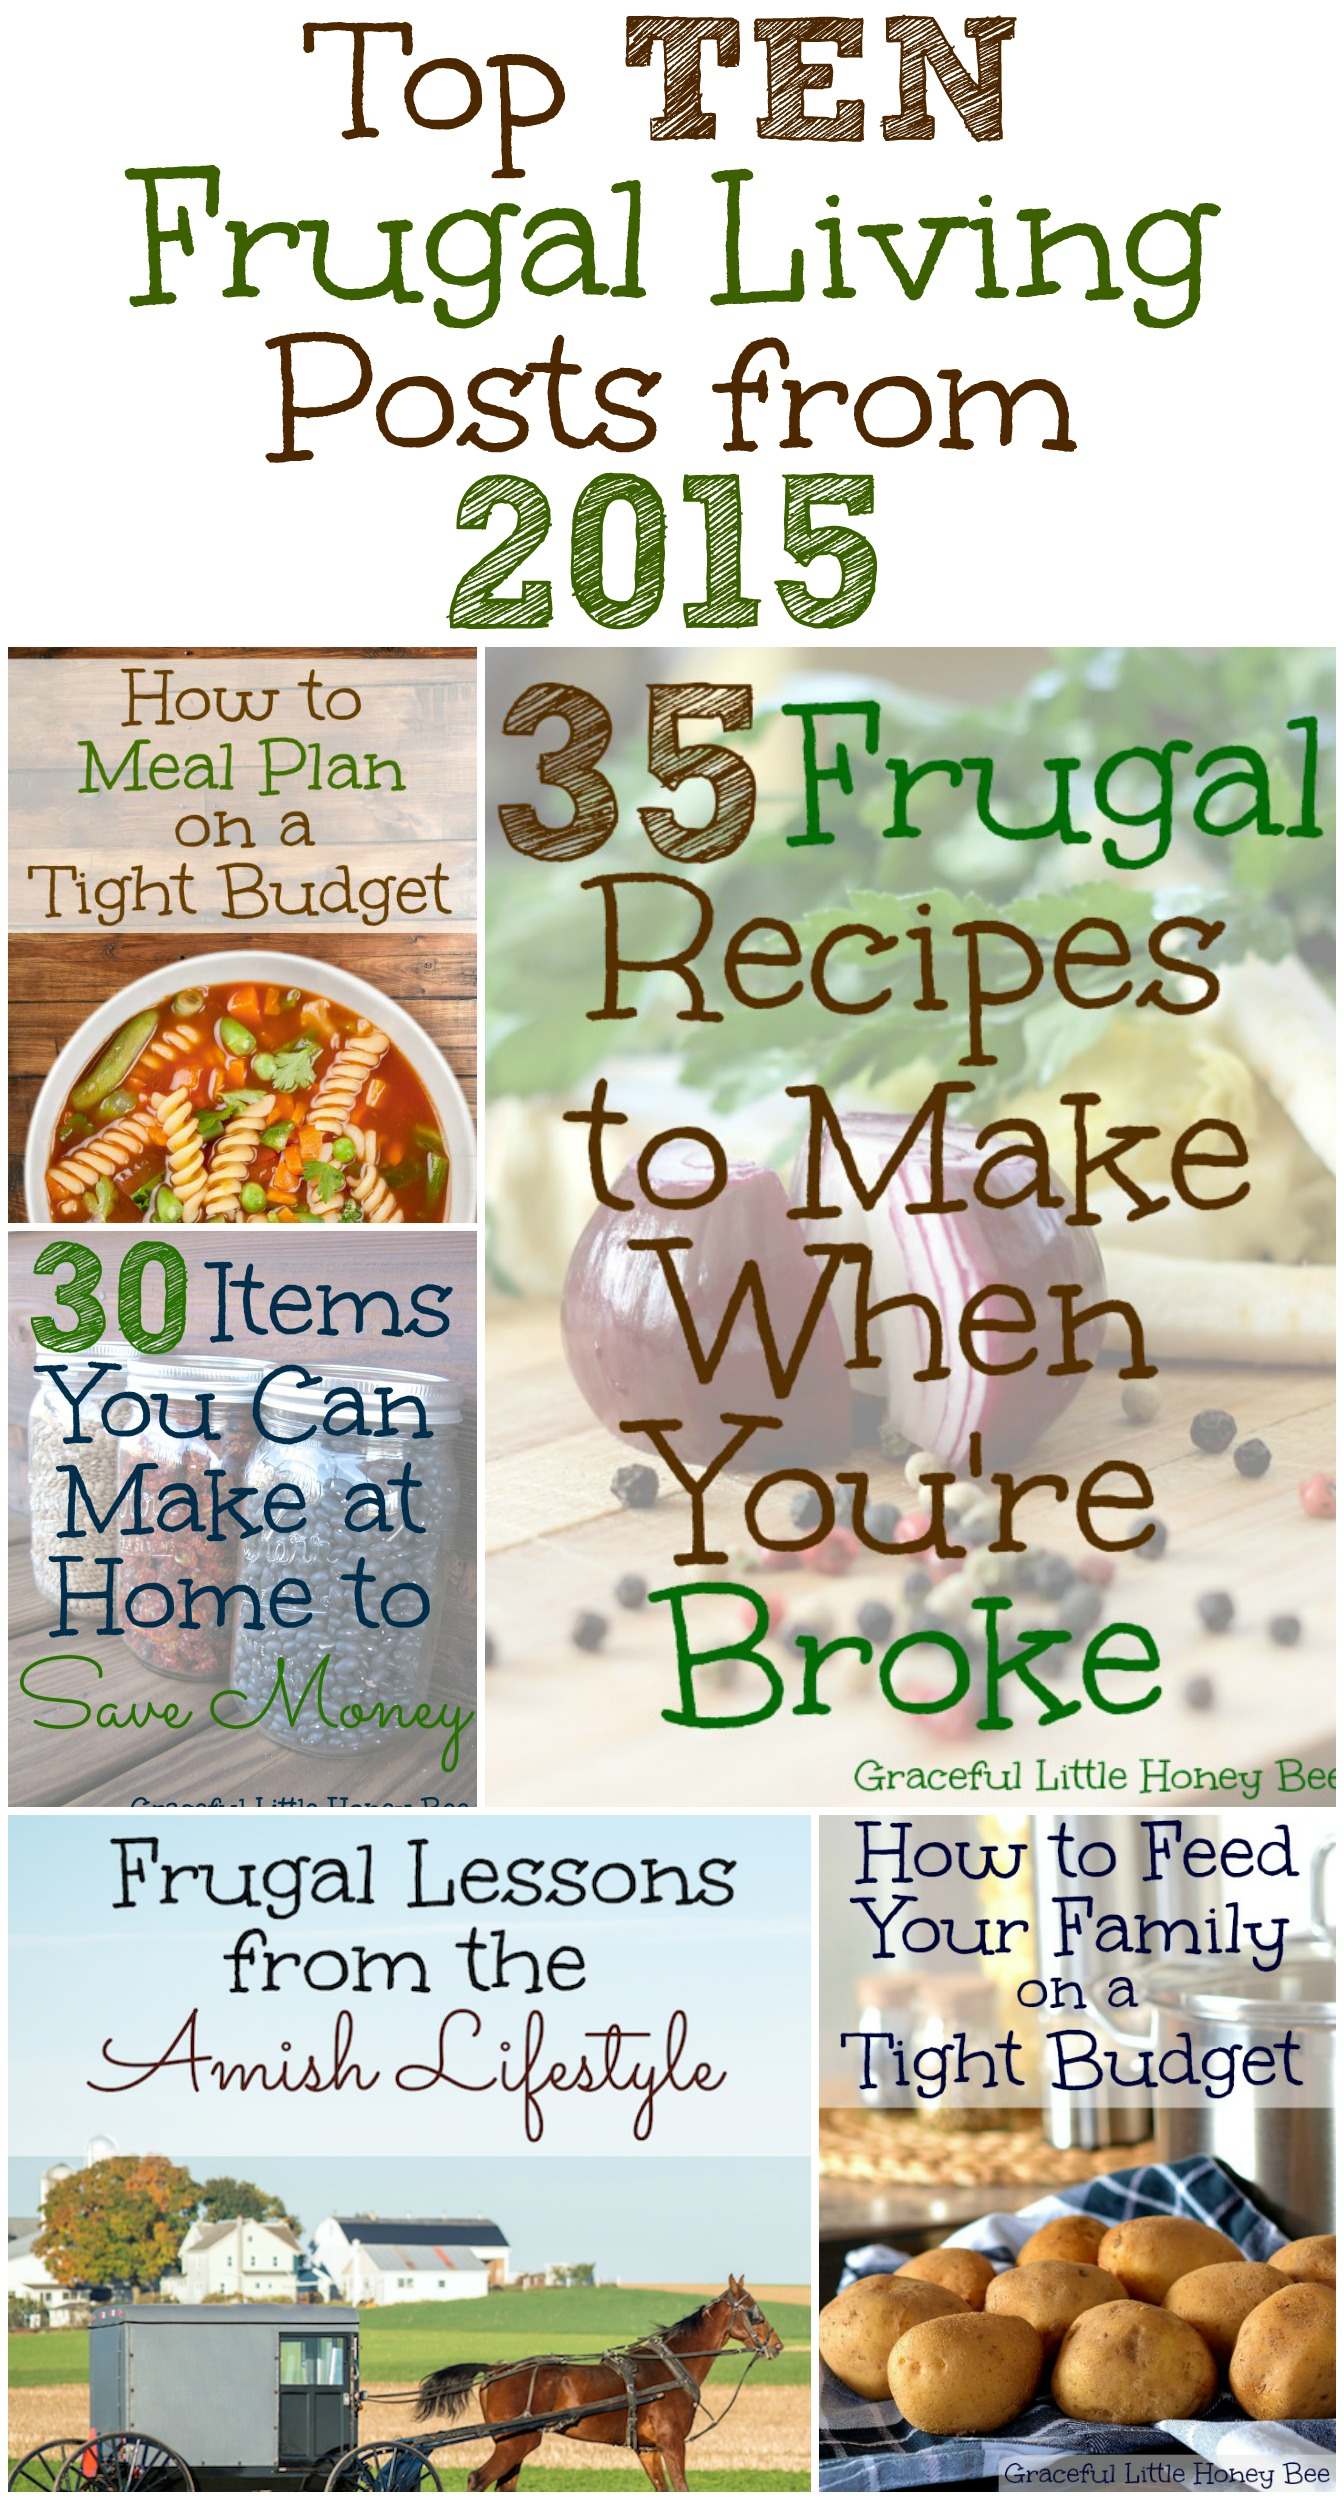 Best 10 Living Room Chandeliers Ideas On Pinterest: Top 10 Frugal Living Posts From 2015